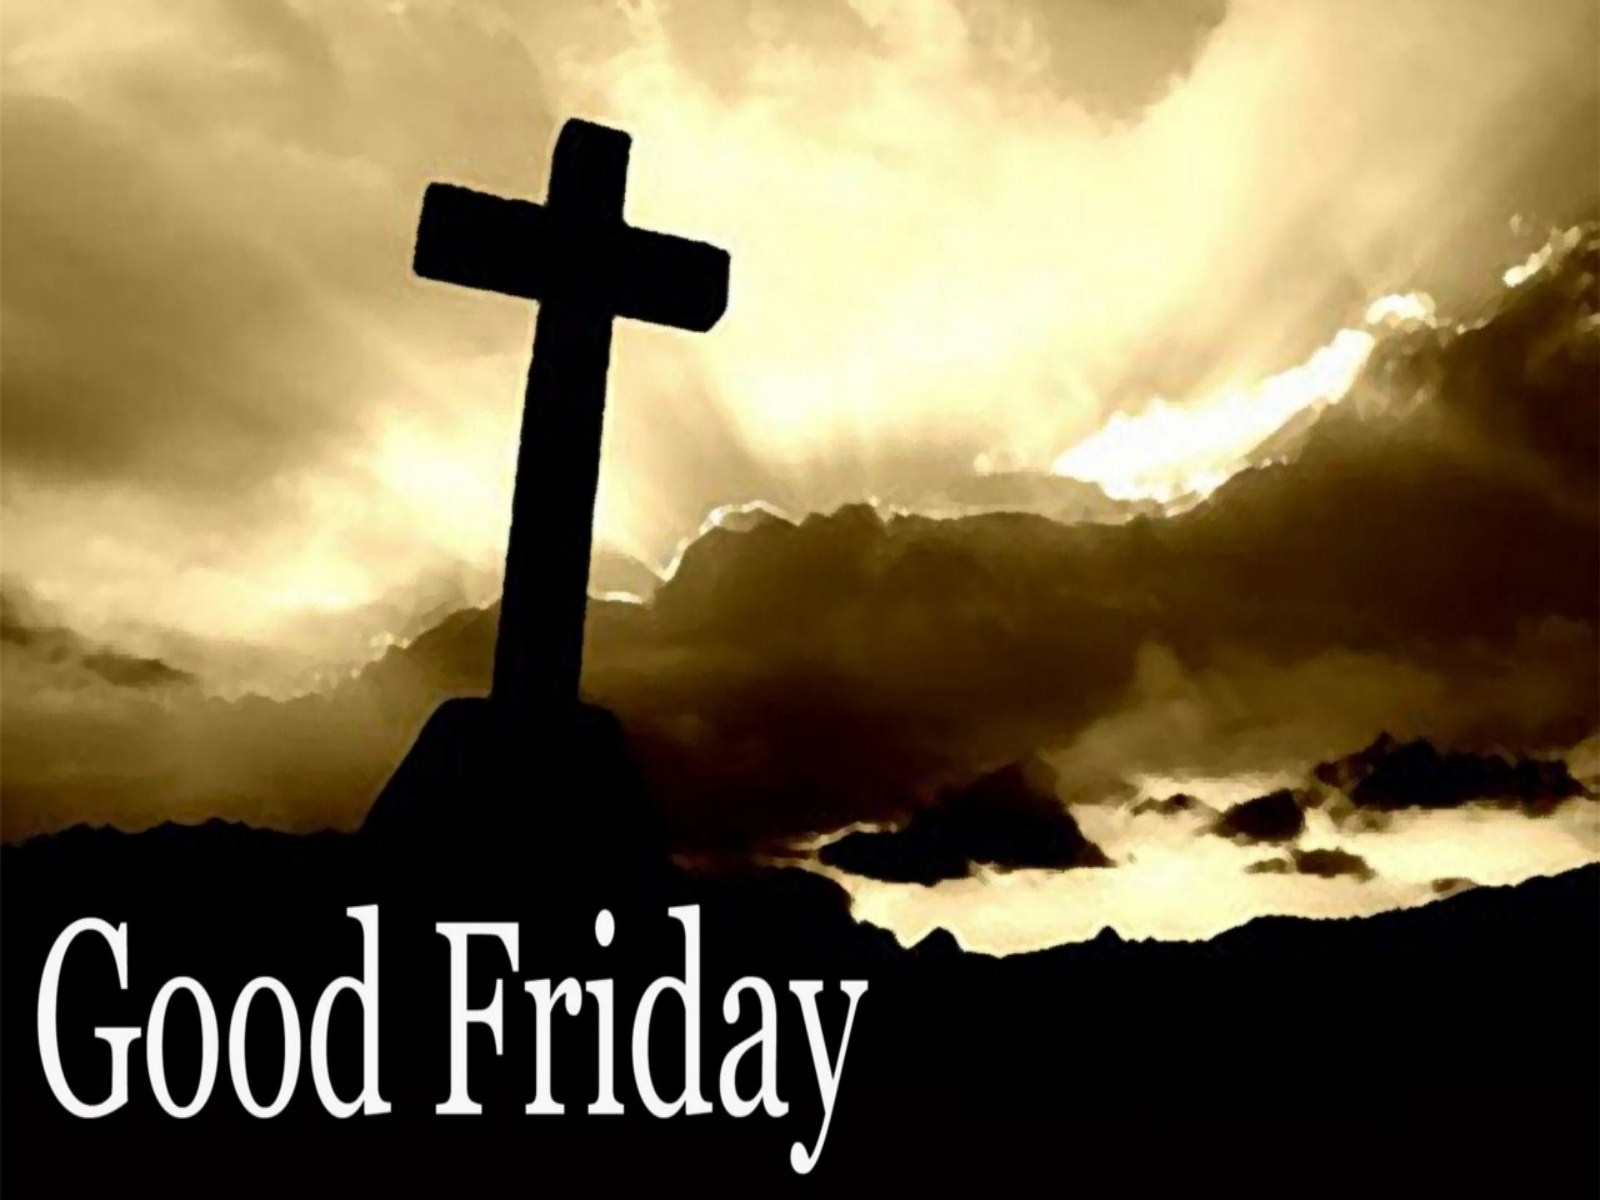 Good Friday 2017 Image for Facebook